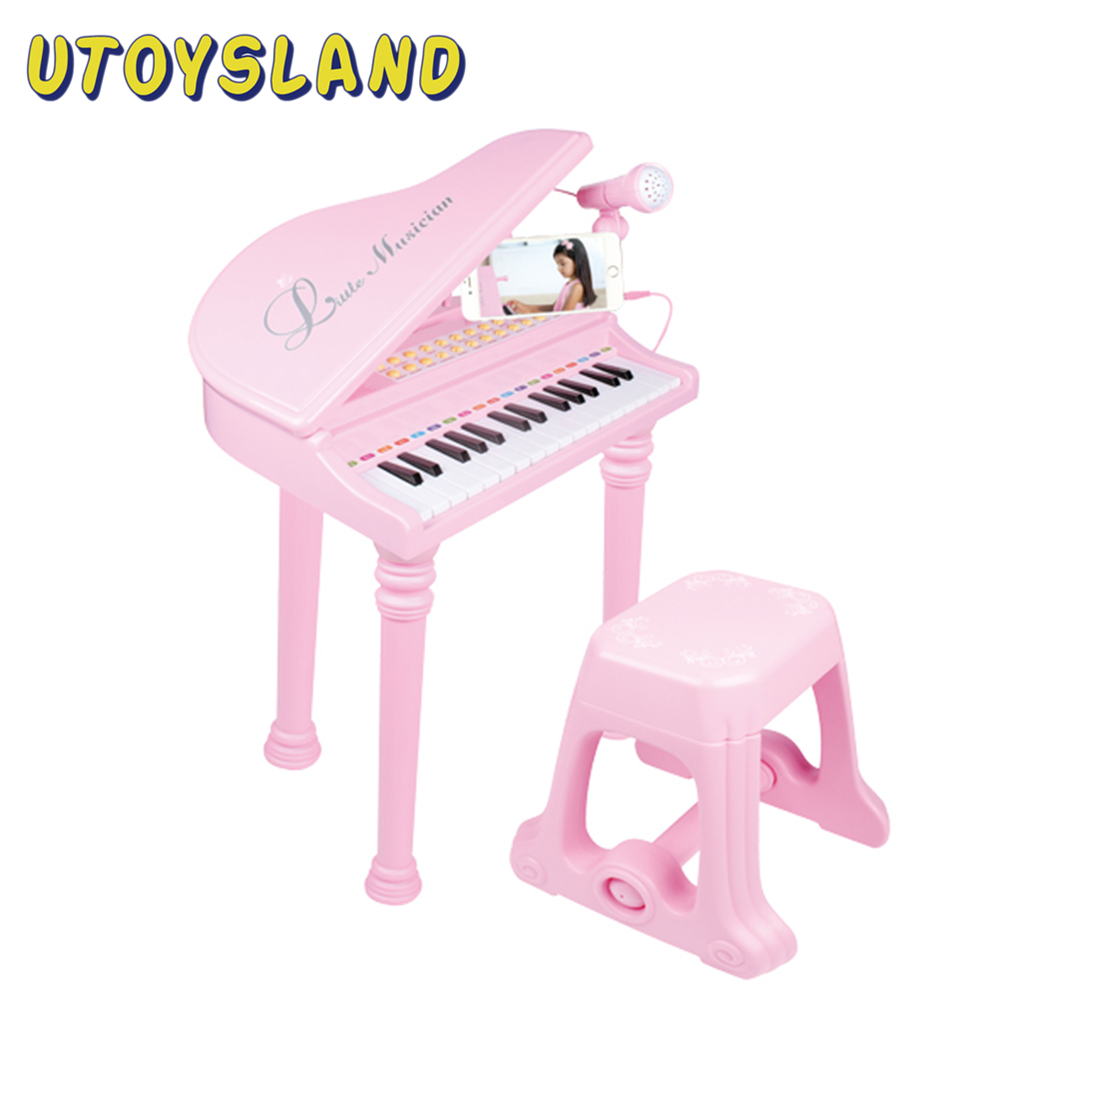 Kids Piano Mini Music Gift Children Musical Toy Piano Microphone Musical Instrument Playing Toy Set Children Gifts - Pink Black